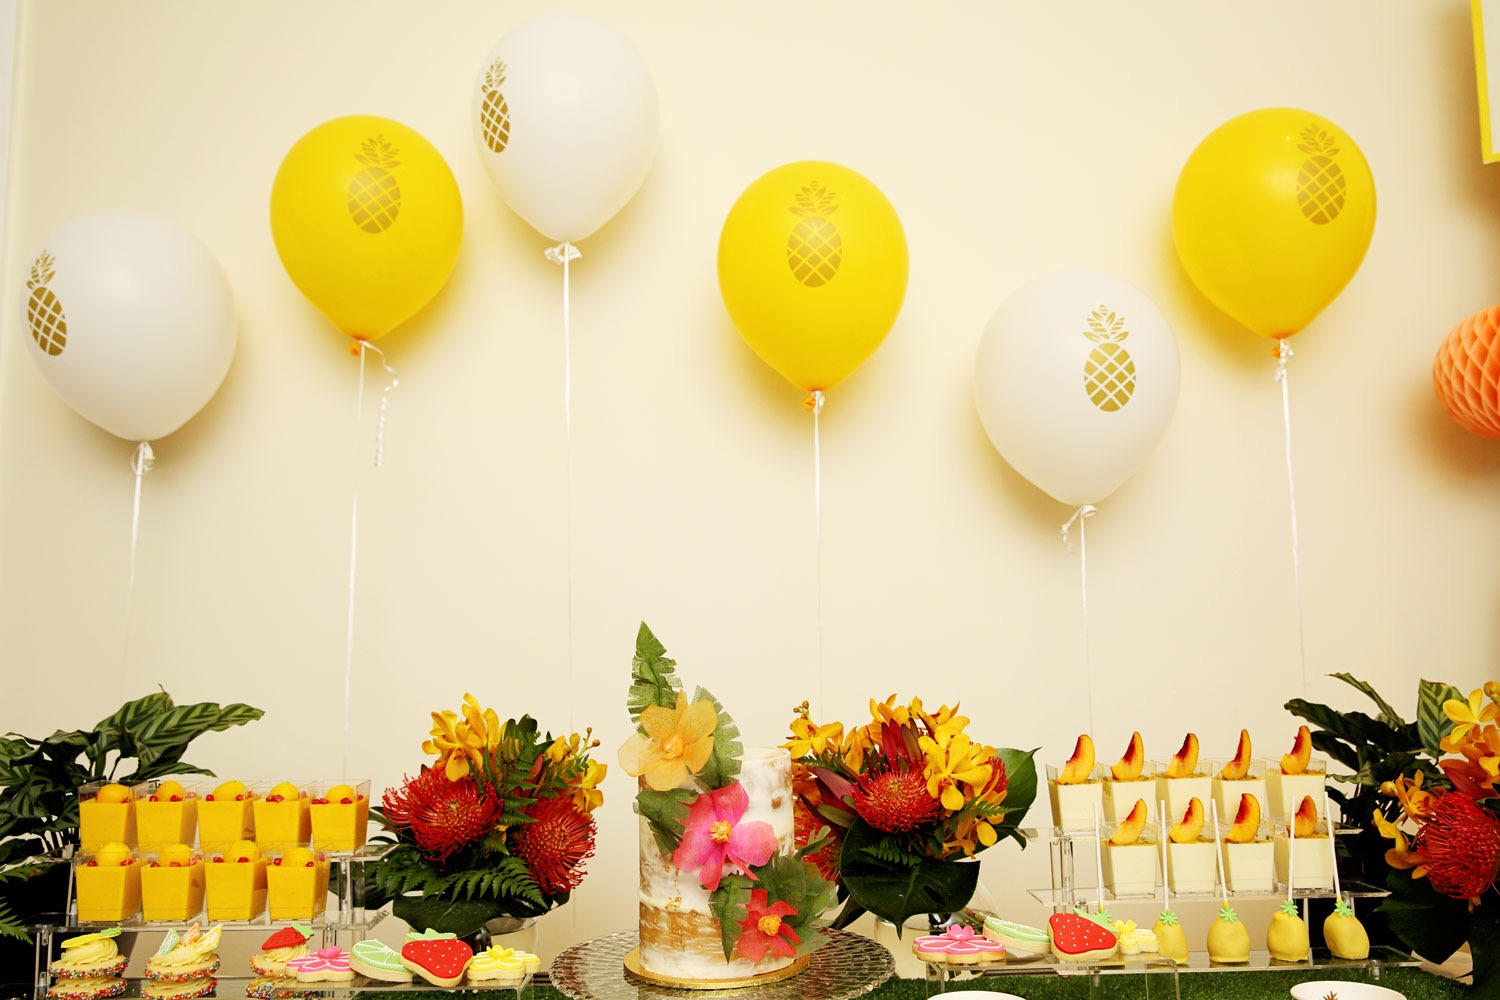 These gold foil stamped balloons from Love the Occasion provide a simple backdrop for the wall - perfect for situations where you can't attach decorations directly to the wall.